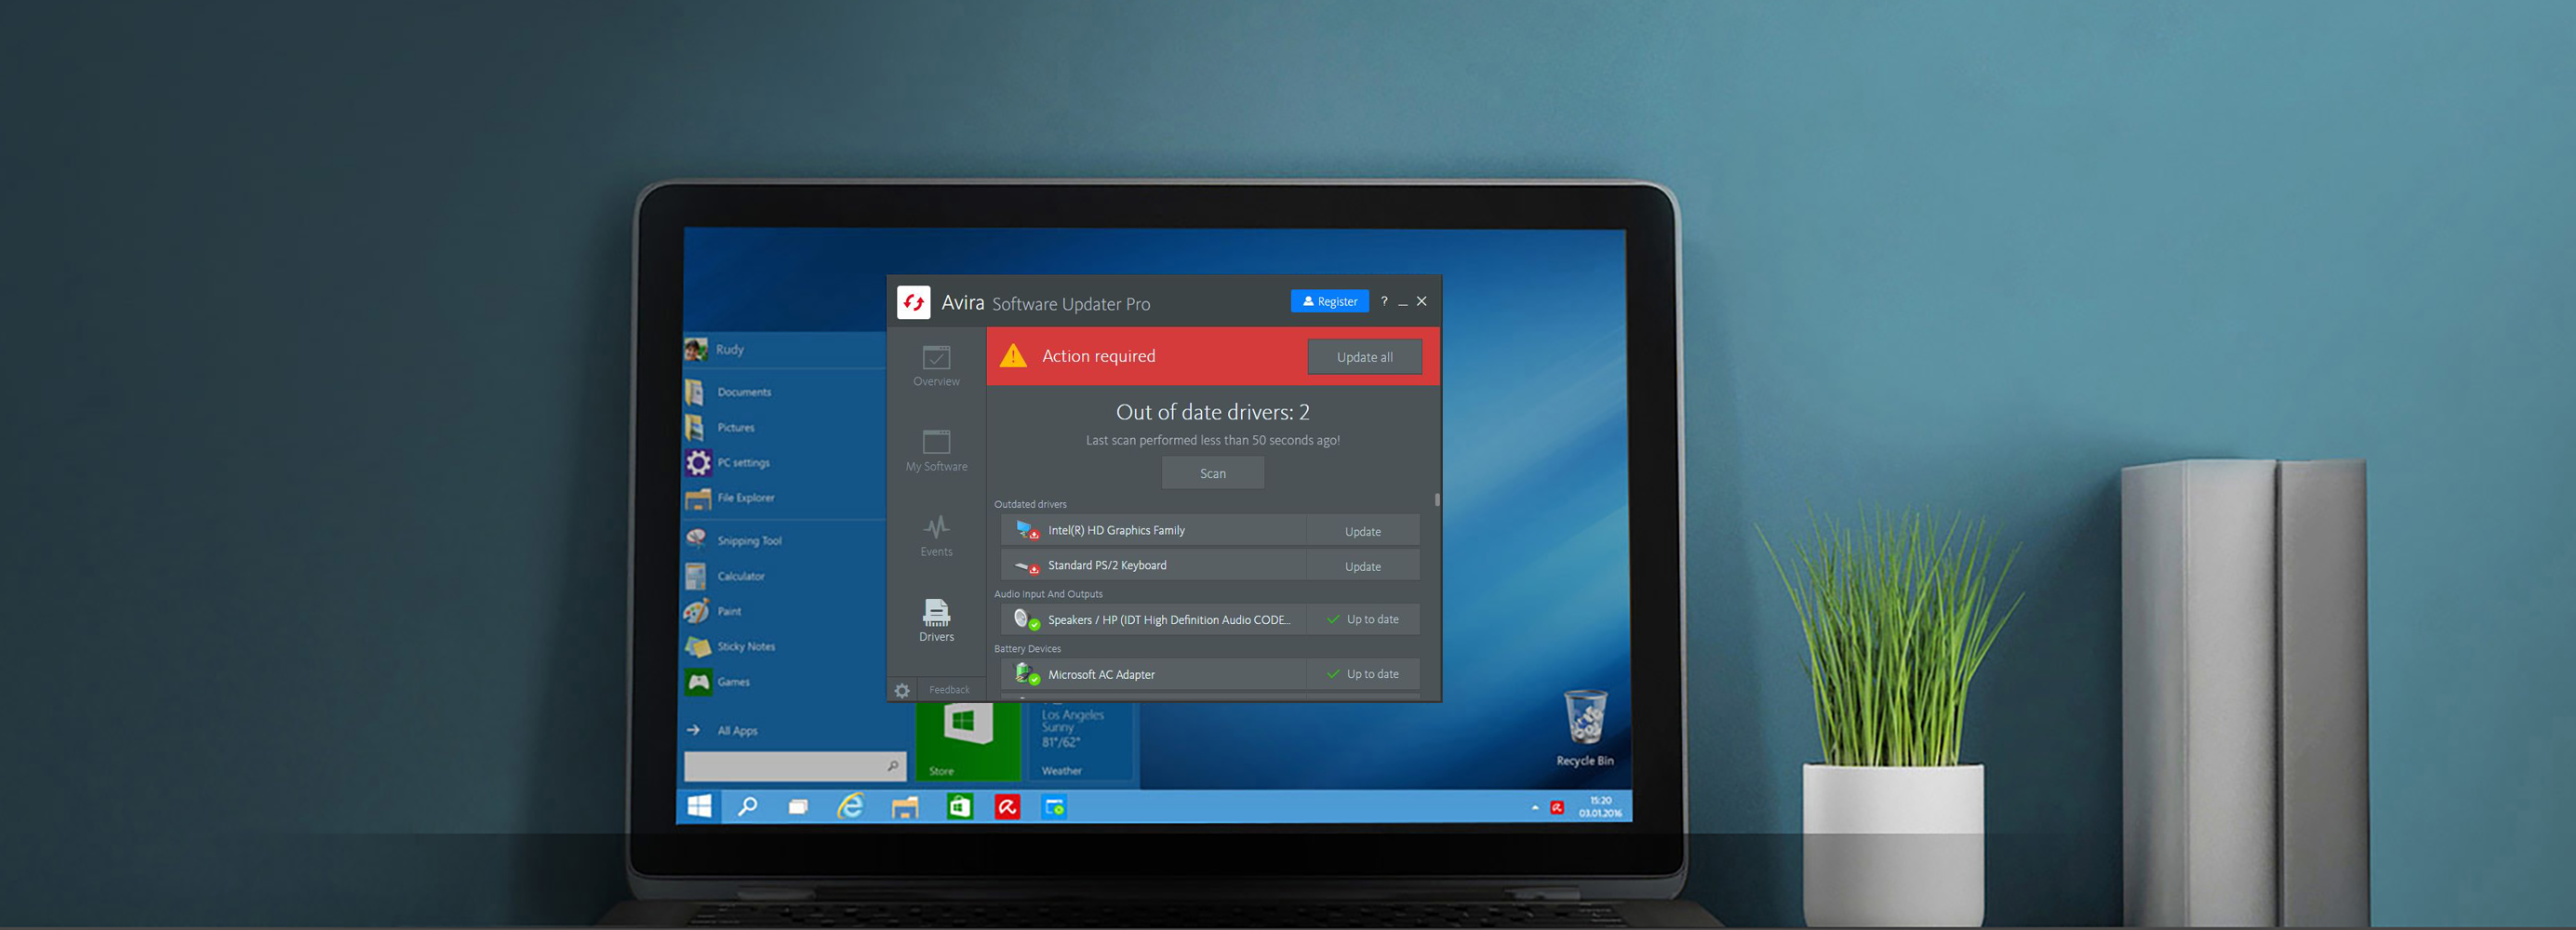 Keep your drivers up to date without taxing your PC - Avira Blog